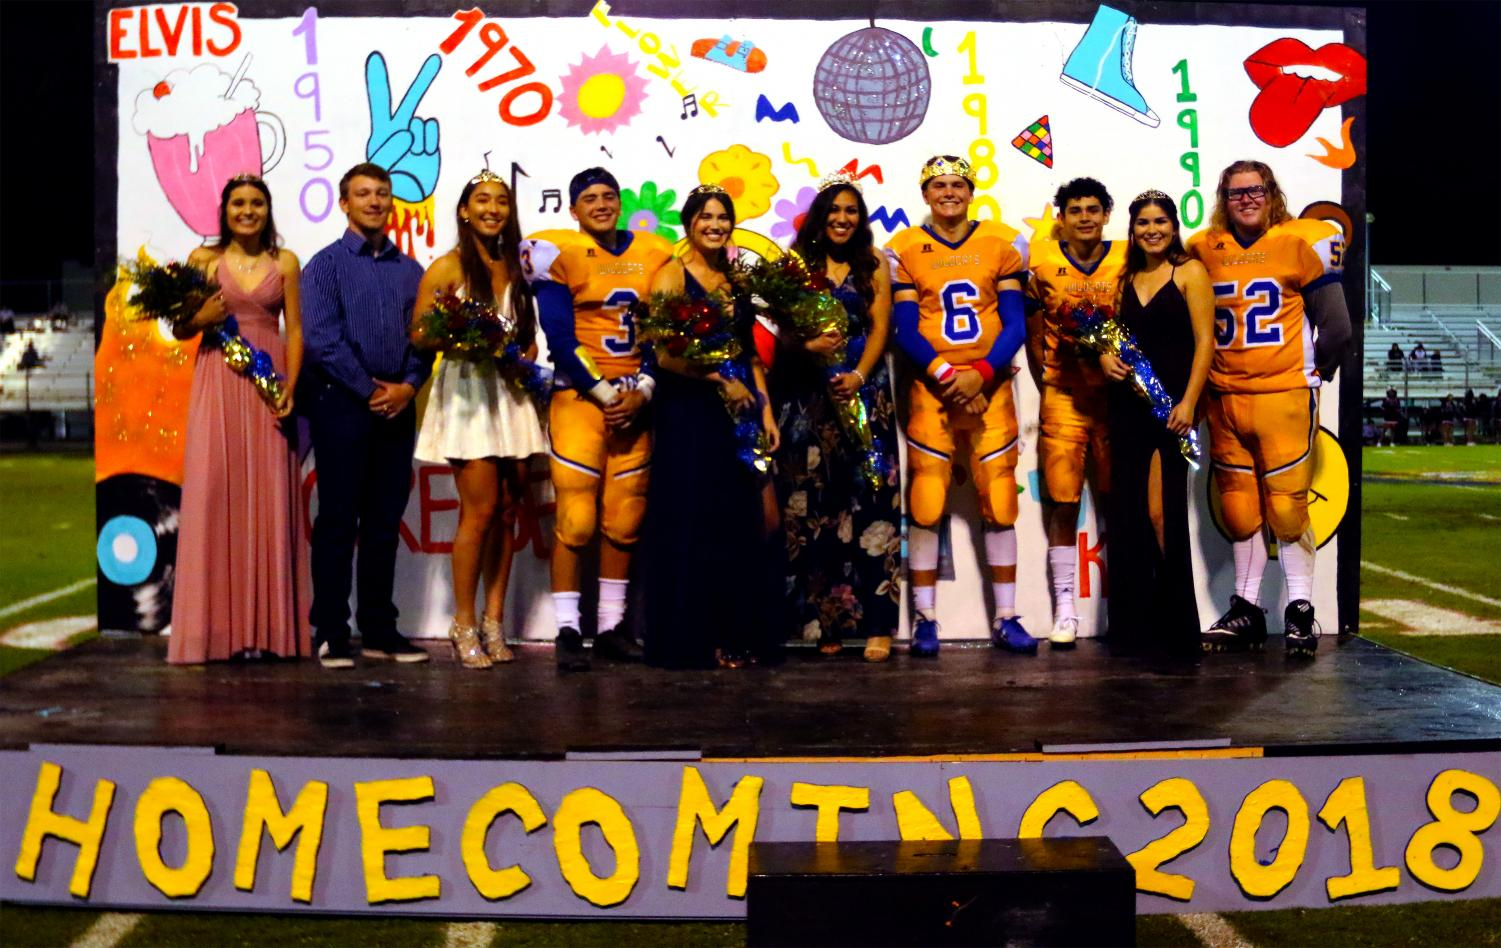 The 2018 Homecoming court posed for pictures after the crowning of Millie Reynoso as Homecoming Queen. Jackson Van Roekel was crowned King at the Powderpuff game.